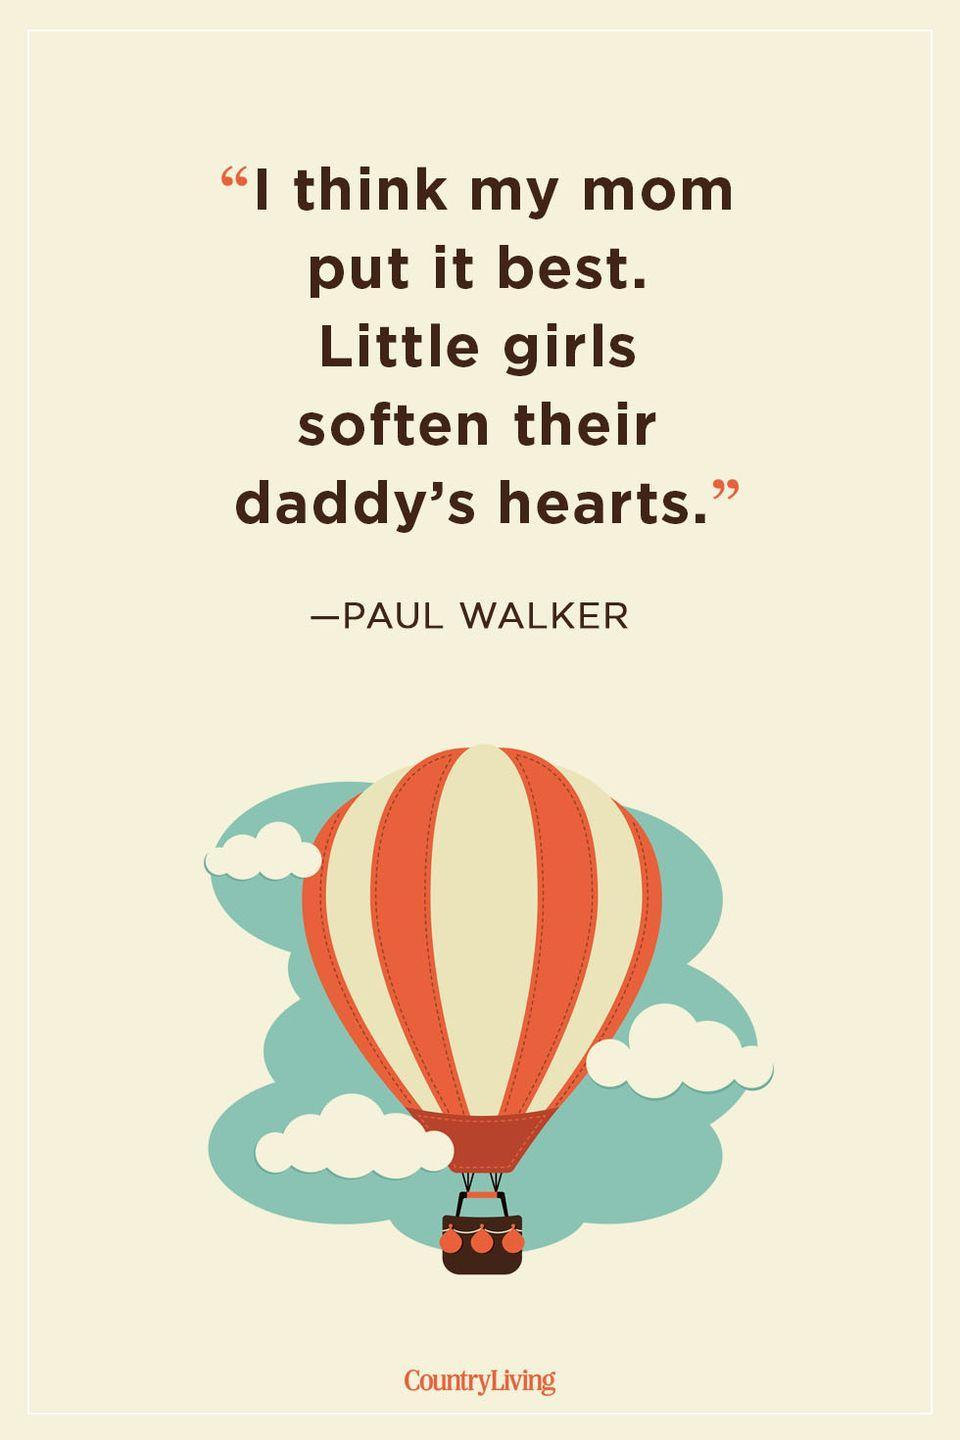 "<p>""I think my mom put it best. Little girls soften their daddy's hearts.""</p>"